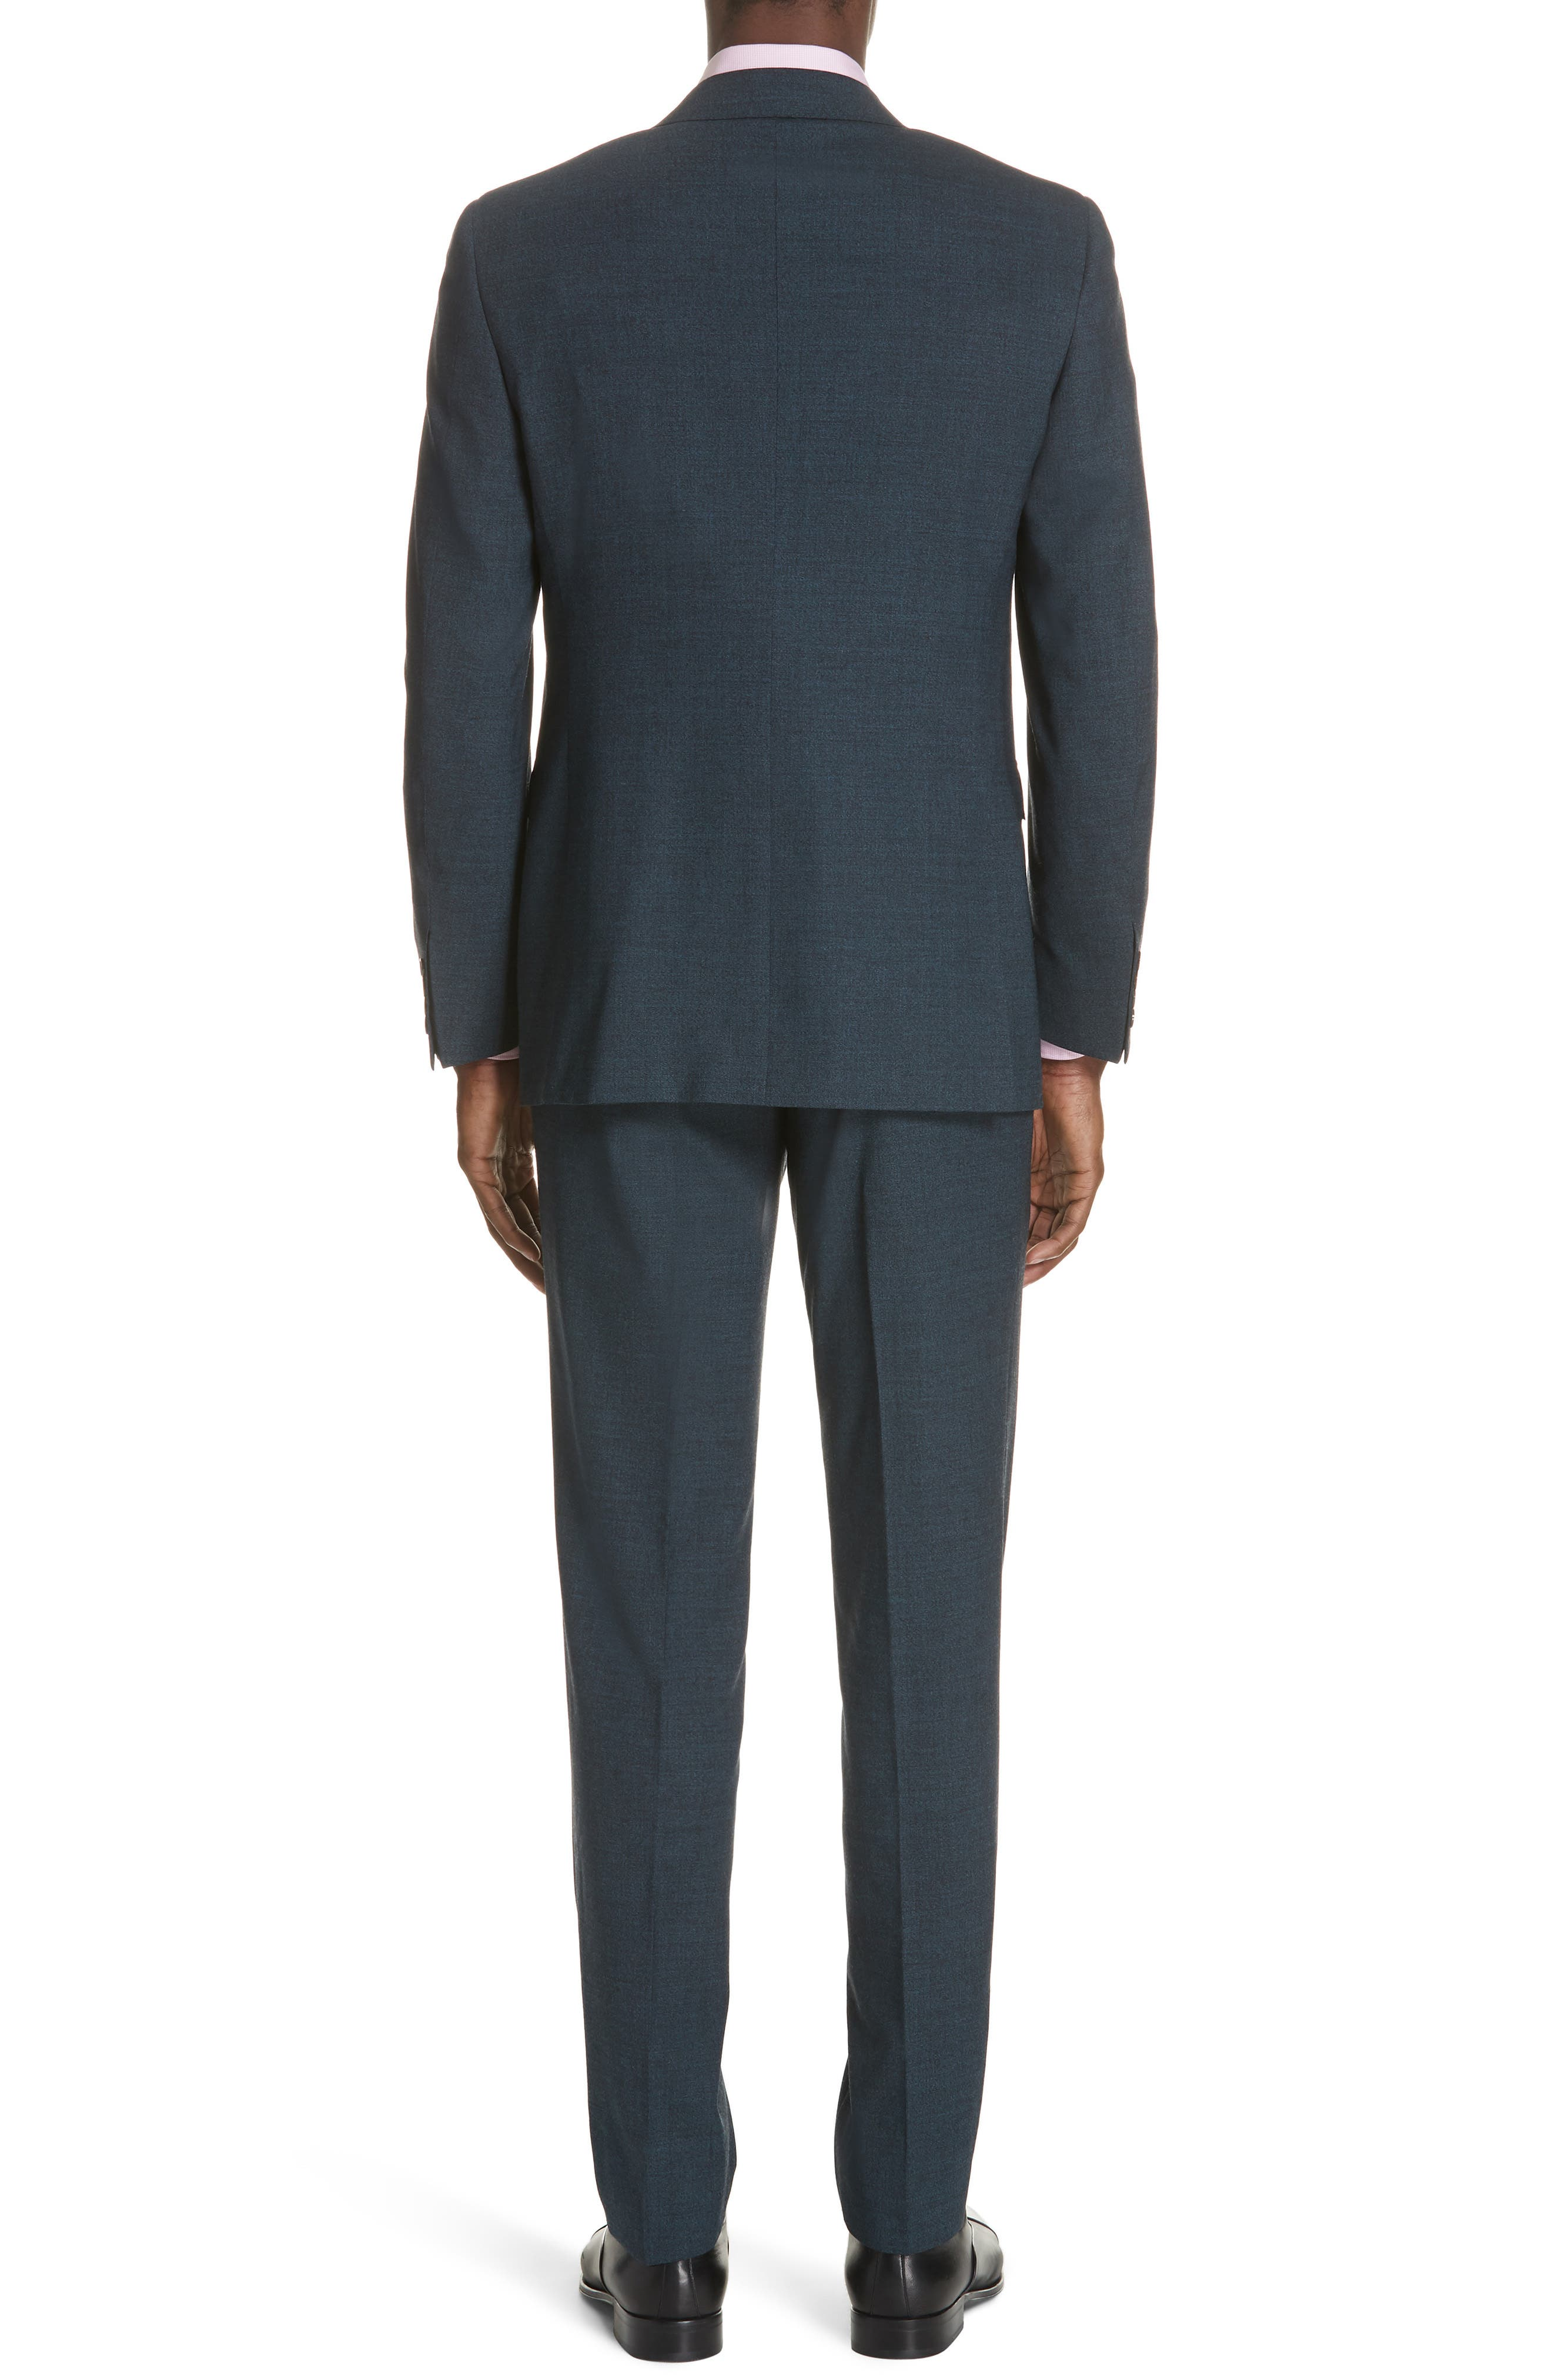 CANALI,                             Classic Fit Stretch Solid Wool Suit,                             Alternate thumbnail 2, color,                             400